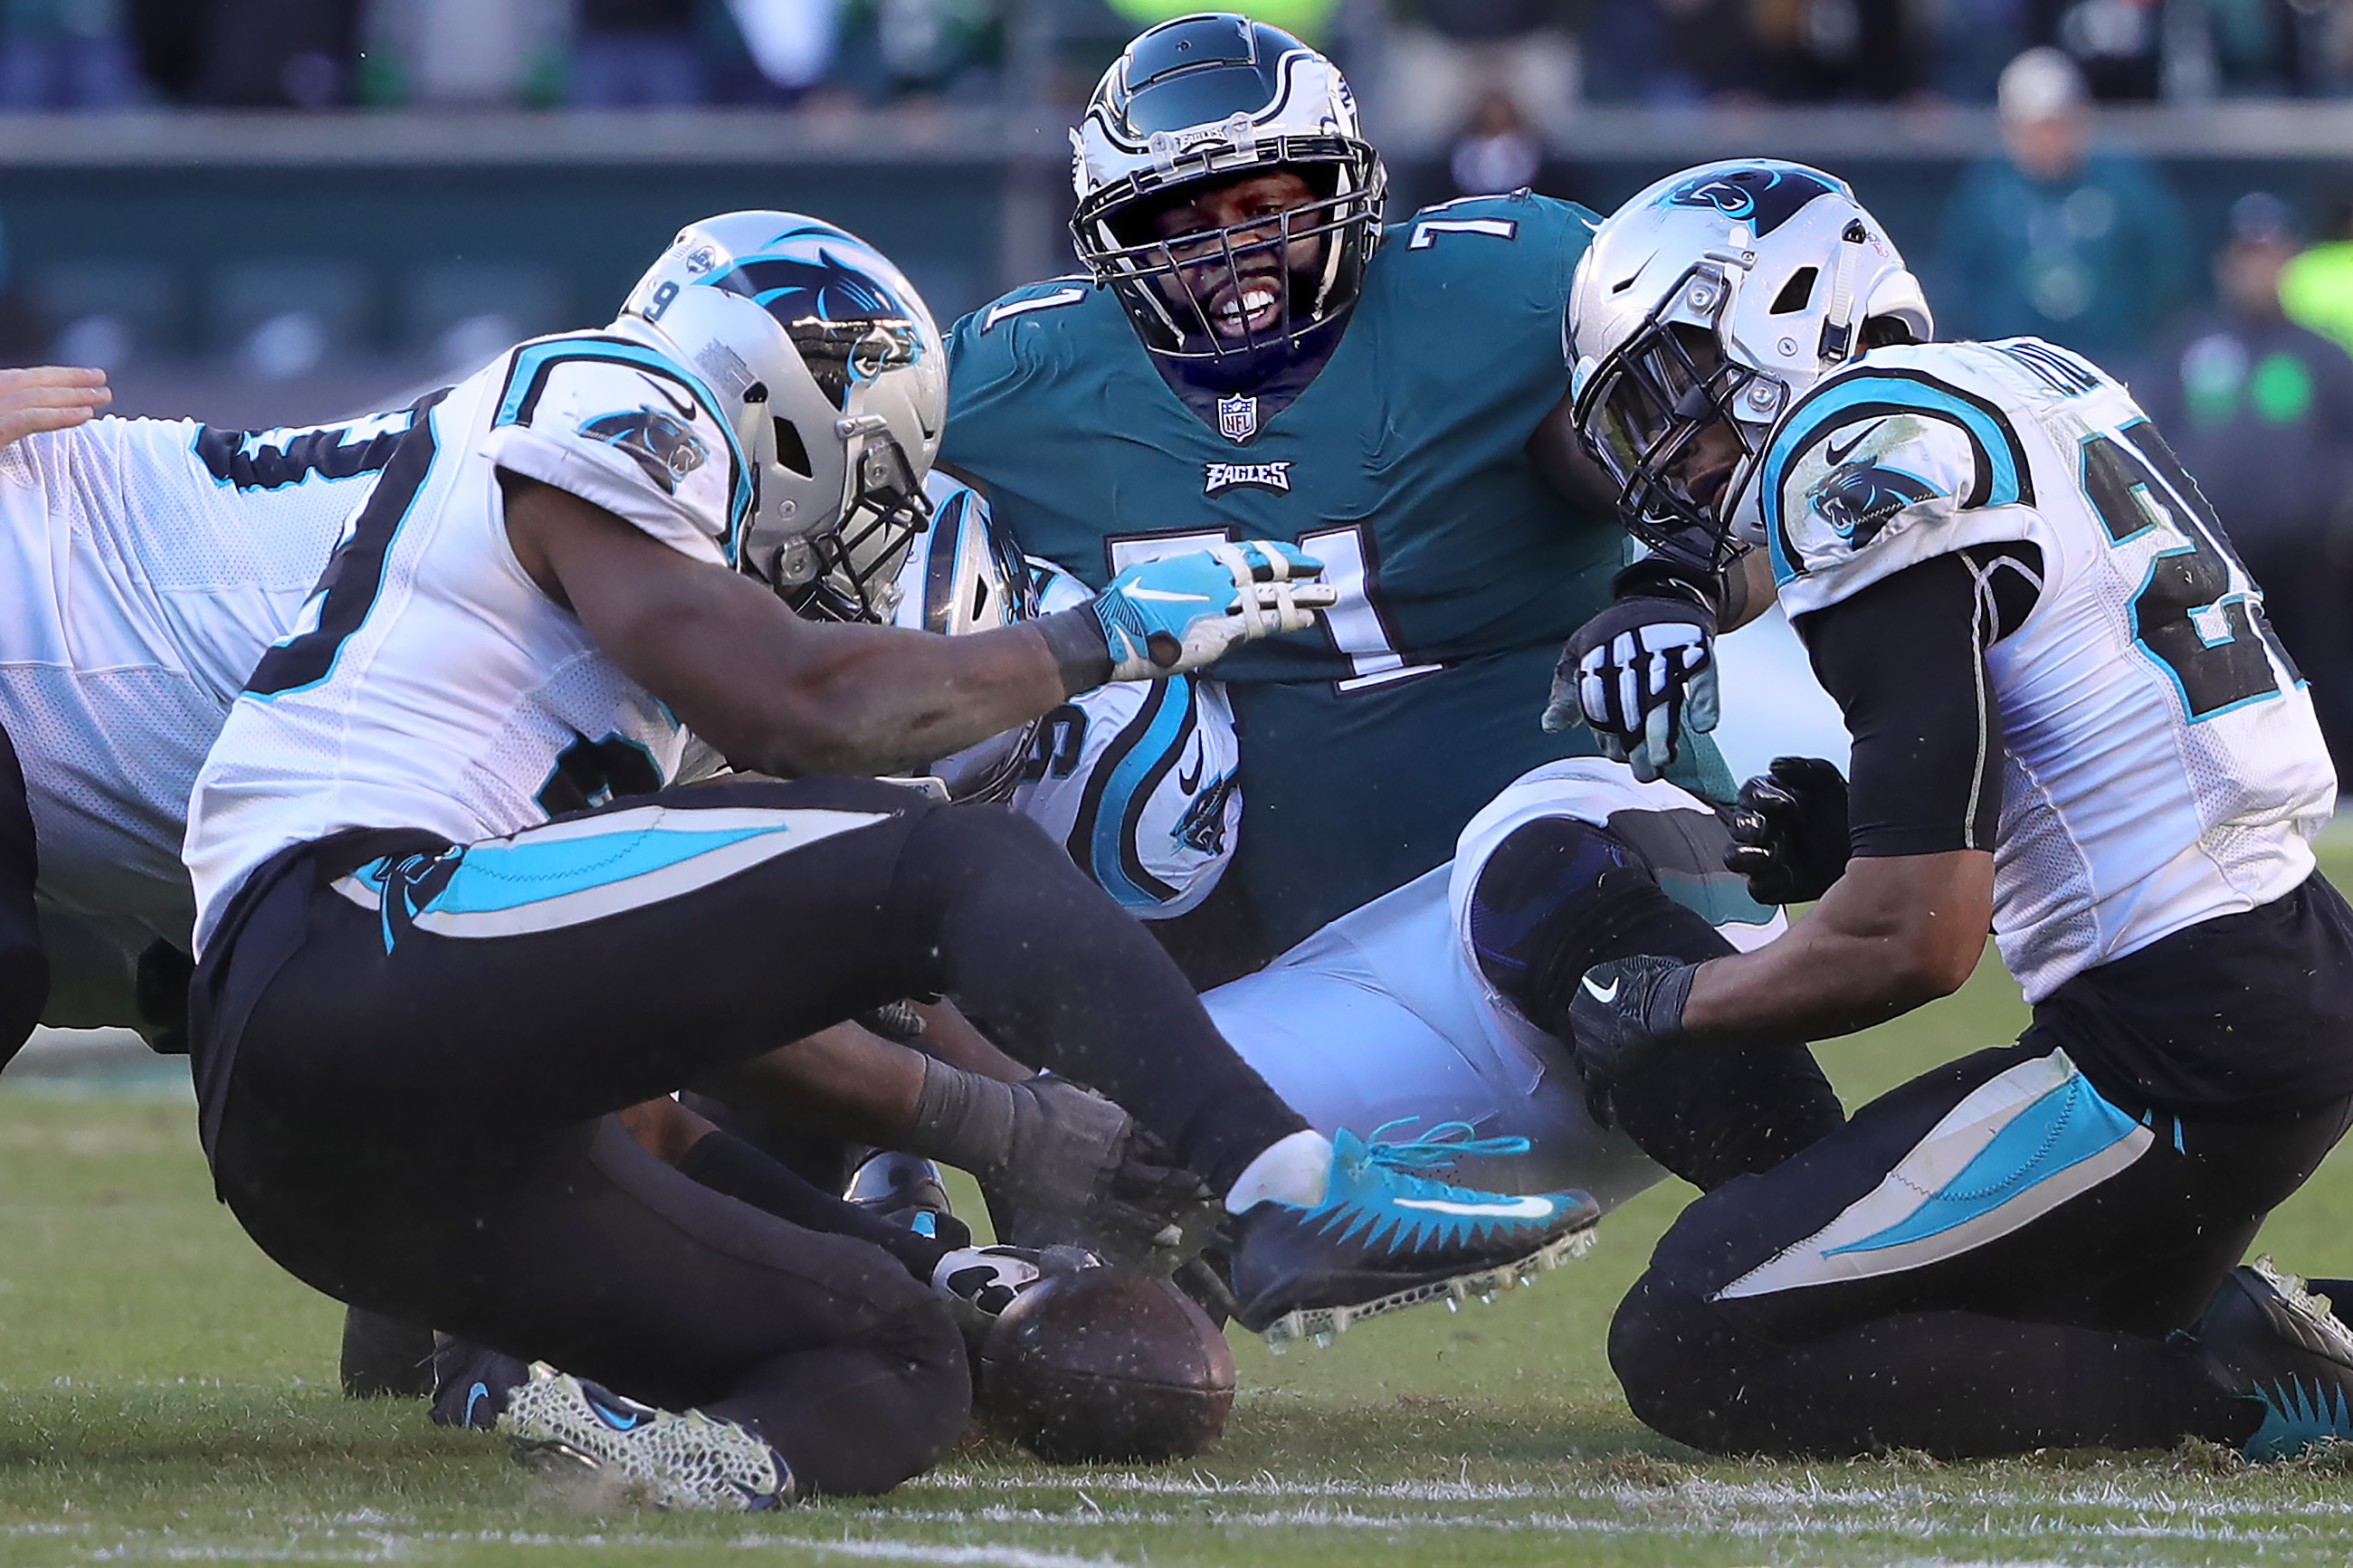 Jason Peters (center) can only watch after Carson Wentz fumbled the football in the fourth quarter.